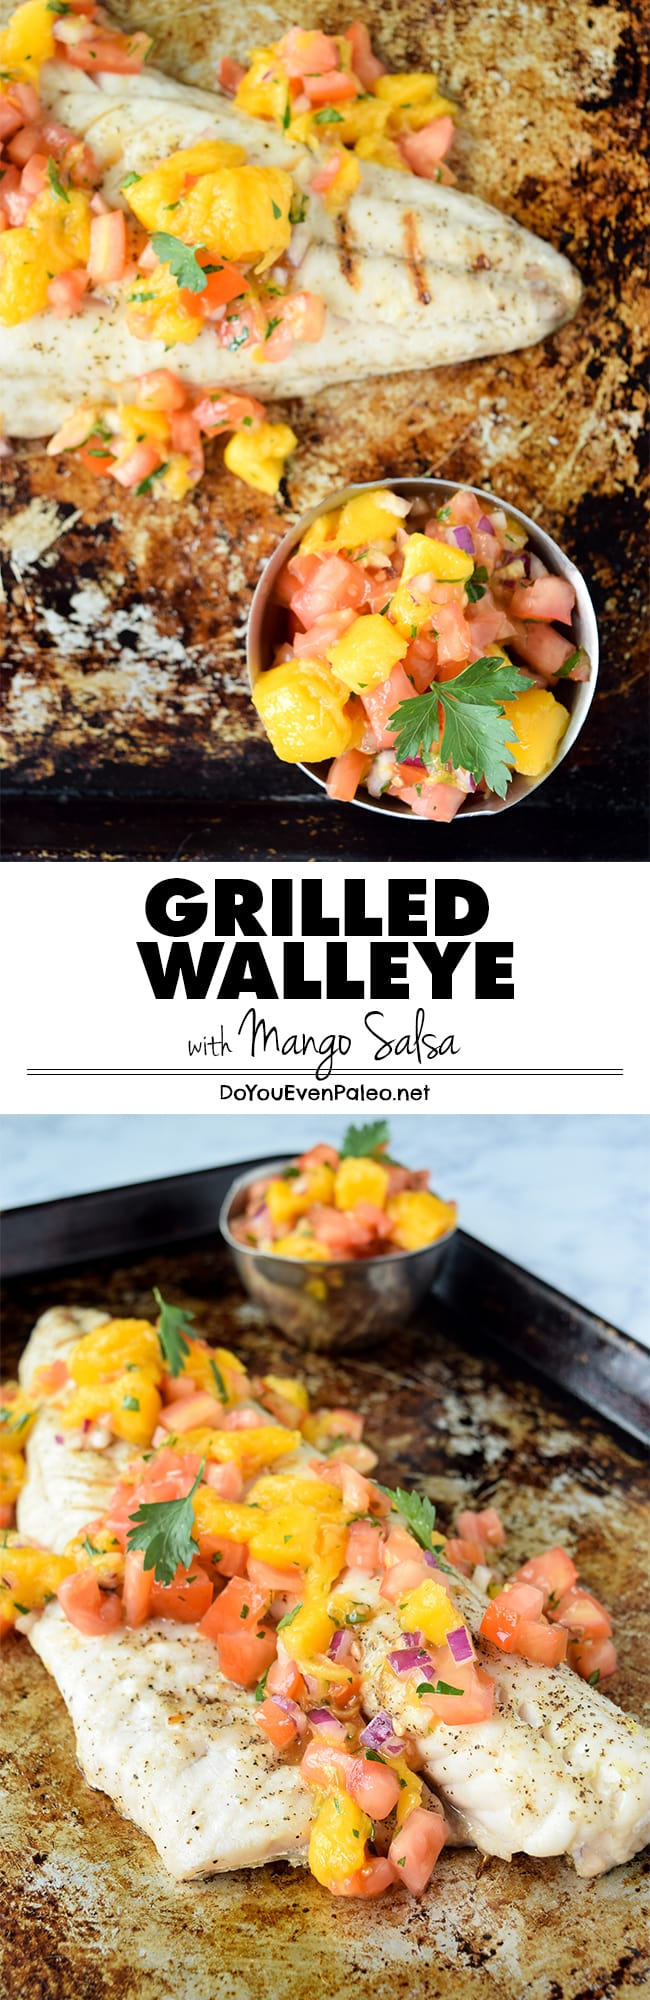 A simple healthy recipe for grilled walleye topped with homemade mango salsa - the flavors of summer, on the dinner table in less than 30 minutes! Plus, it's a paleo, gluten free, clean eating, Whole30 recipe! | DoYouEvenPaleo.net  #paleo #glutenfree #whole30 #doyouevenpaleo